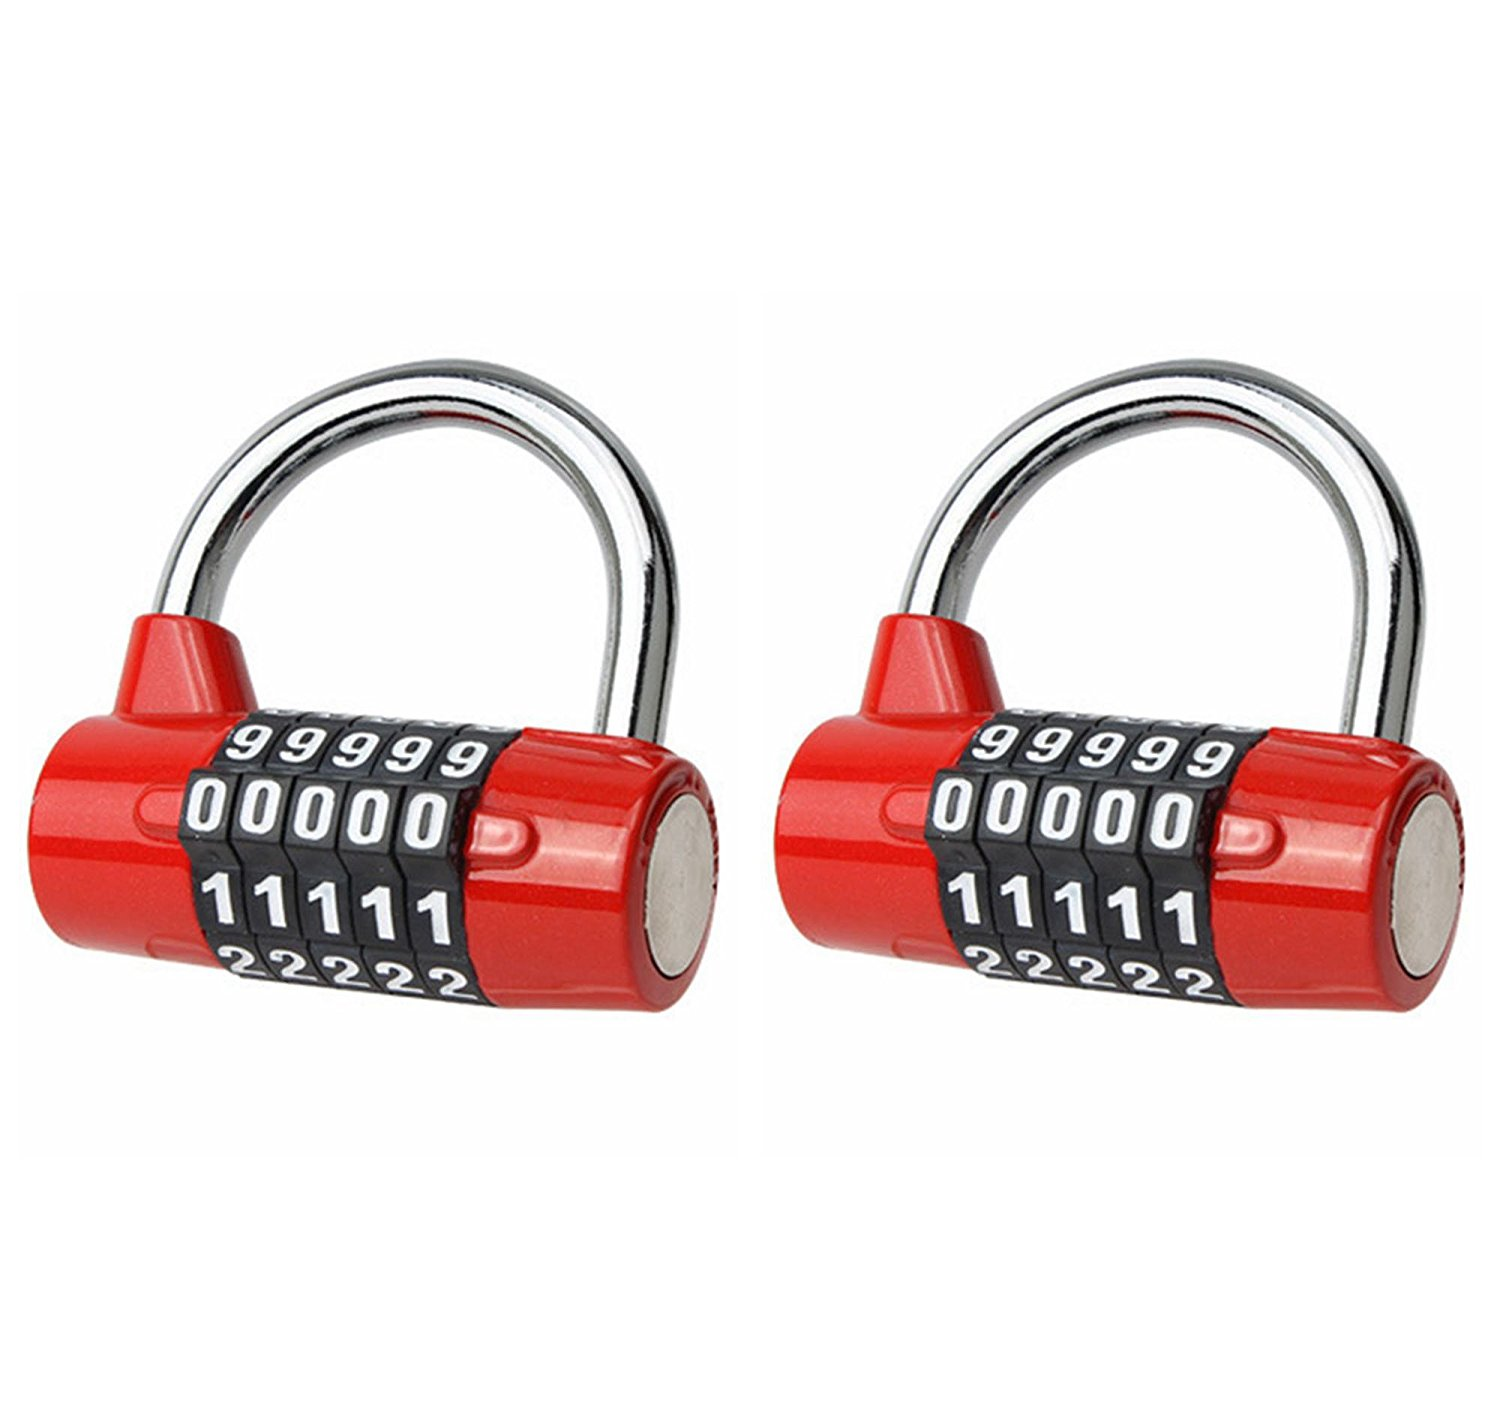 L-Anan Combination Lock, 5-Digit Re-settable Padlock, Security Padlock, Gym Lock, Lock Padlock for School, Home, Office, Travel, Gym, Bicycle, Toolbox, Luggage, Cabinet (2 Pack) (Red)